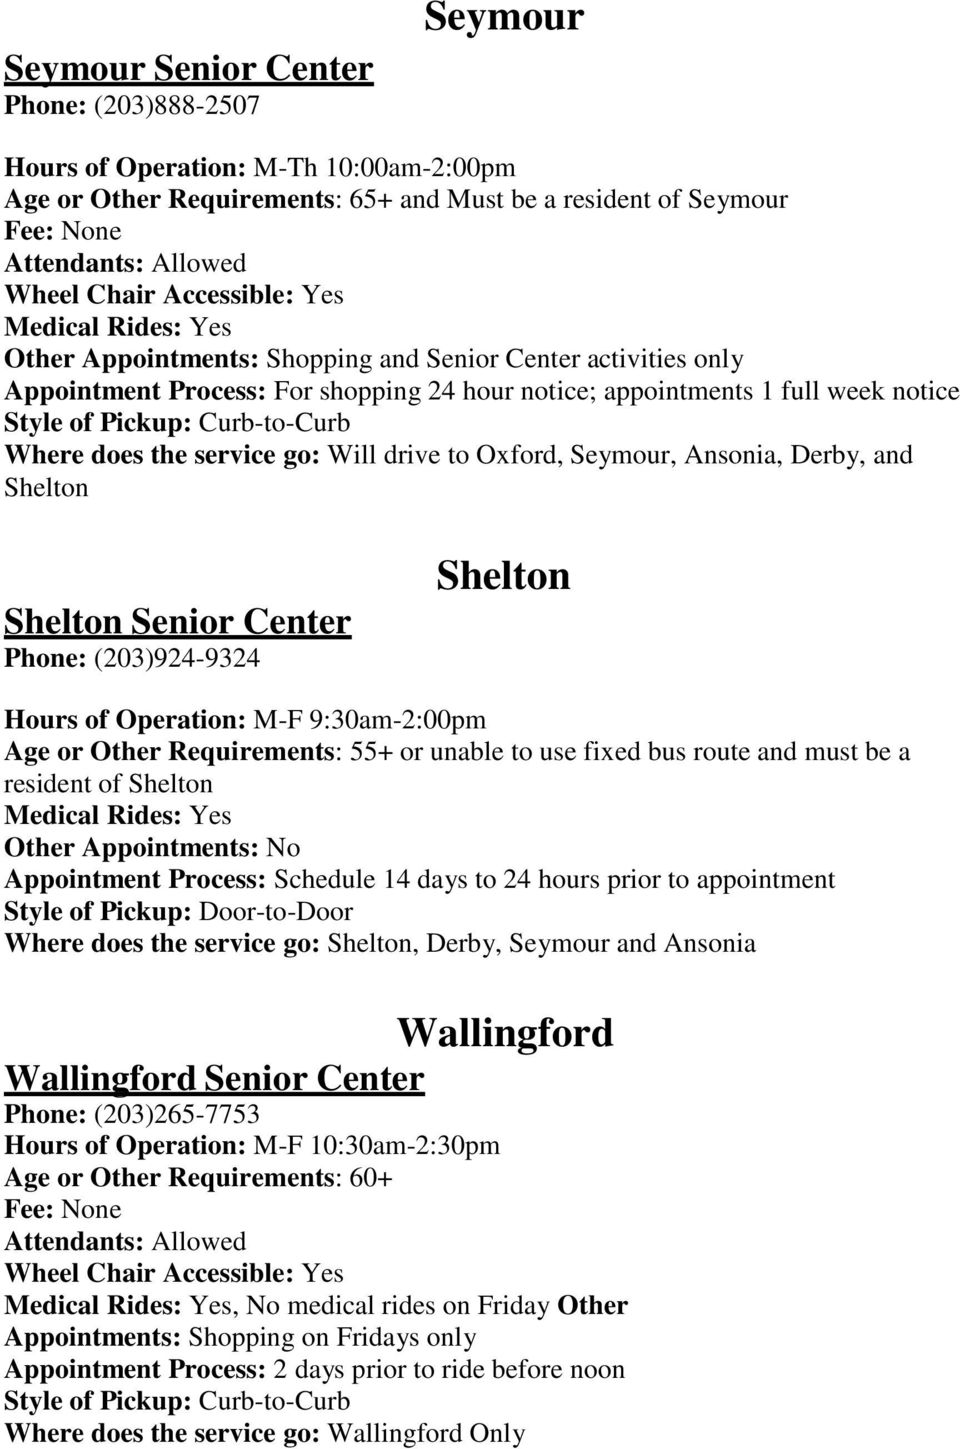 Shelton Senior Center Phone: (203)924-9324 Shelton Hours of Operation: M-F 9:30am-2:00pm Age or Other Requirements: 55+ or unable to use fixed bus route and must be a resident of Shelton Other